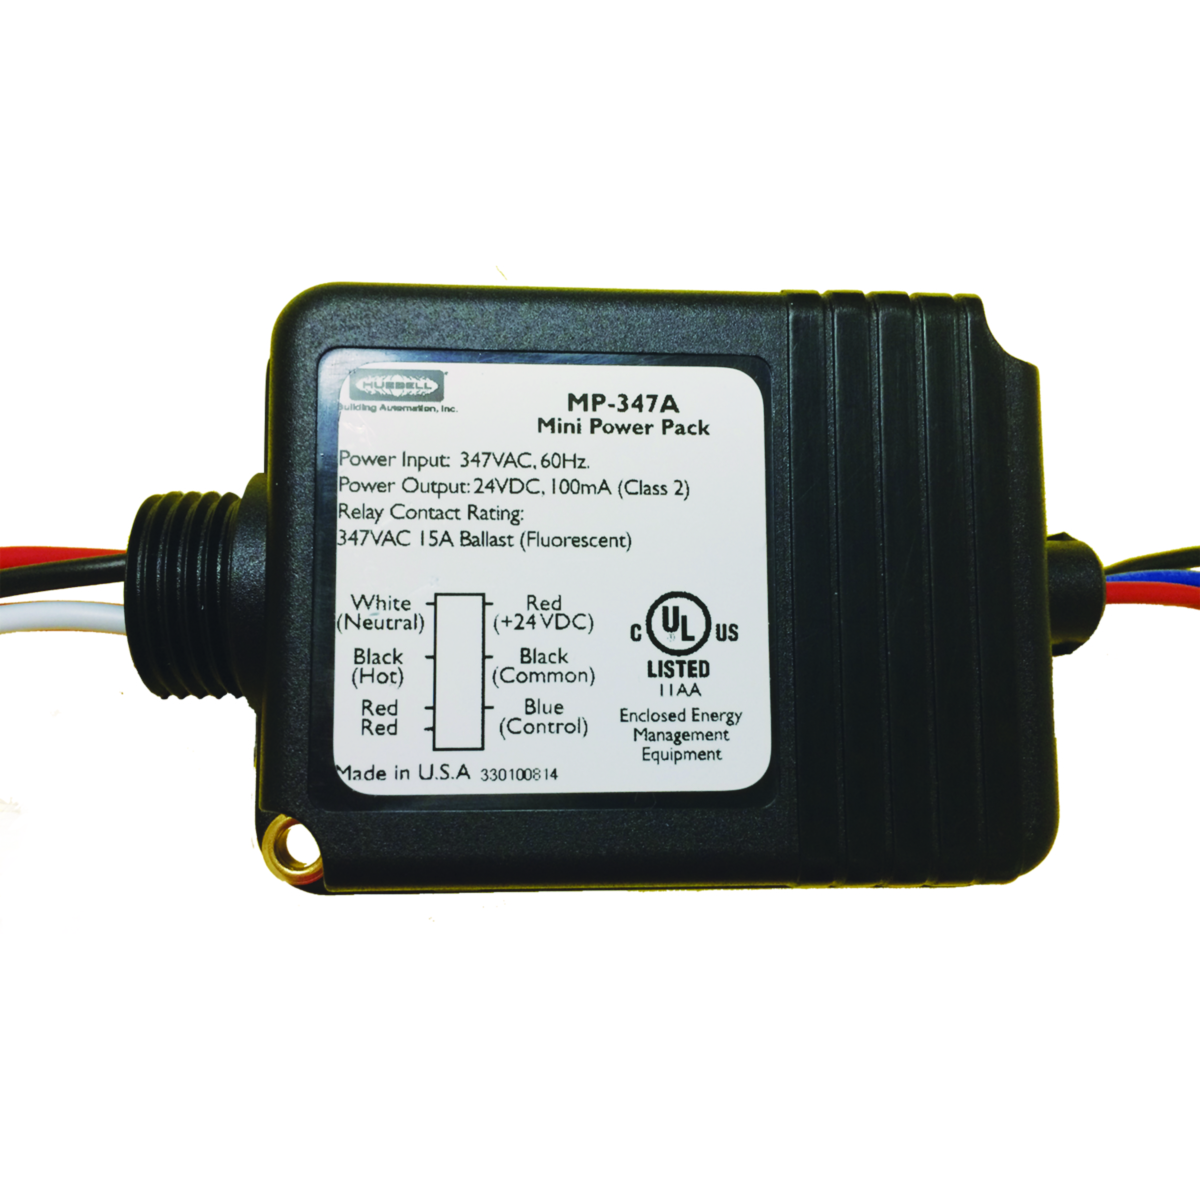 Occupancy Vacancy Sensors Lighting Controls Shop Vac For On And Off Switch Wiring Diagram Mp347a Power Pack